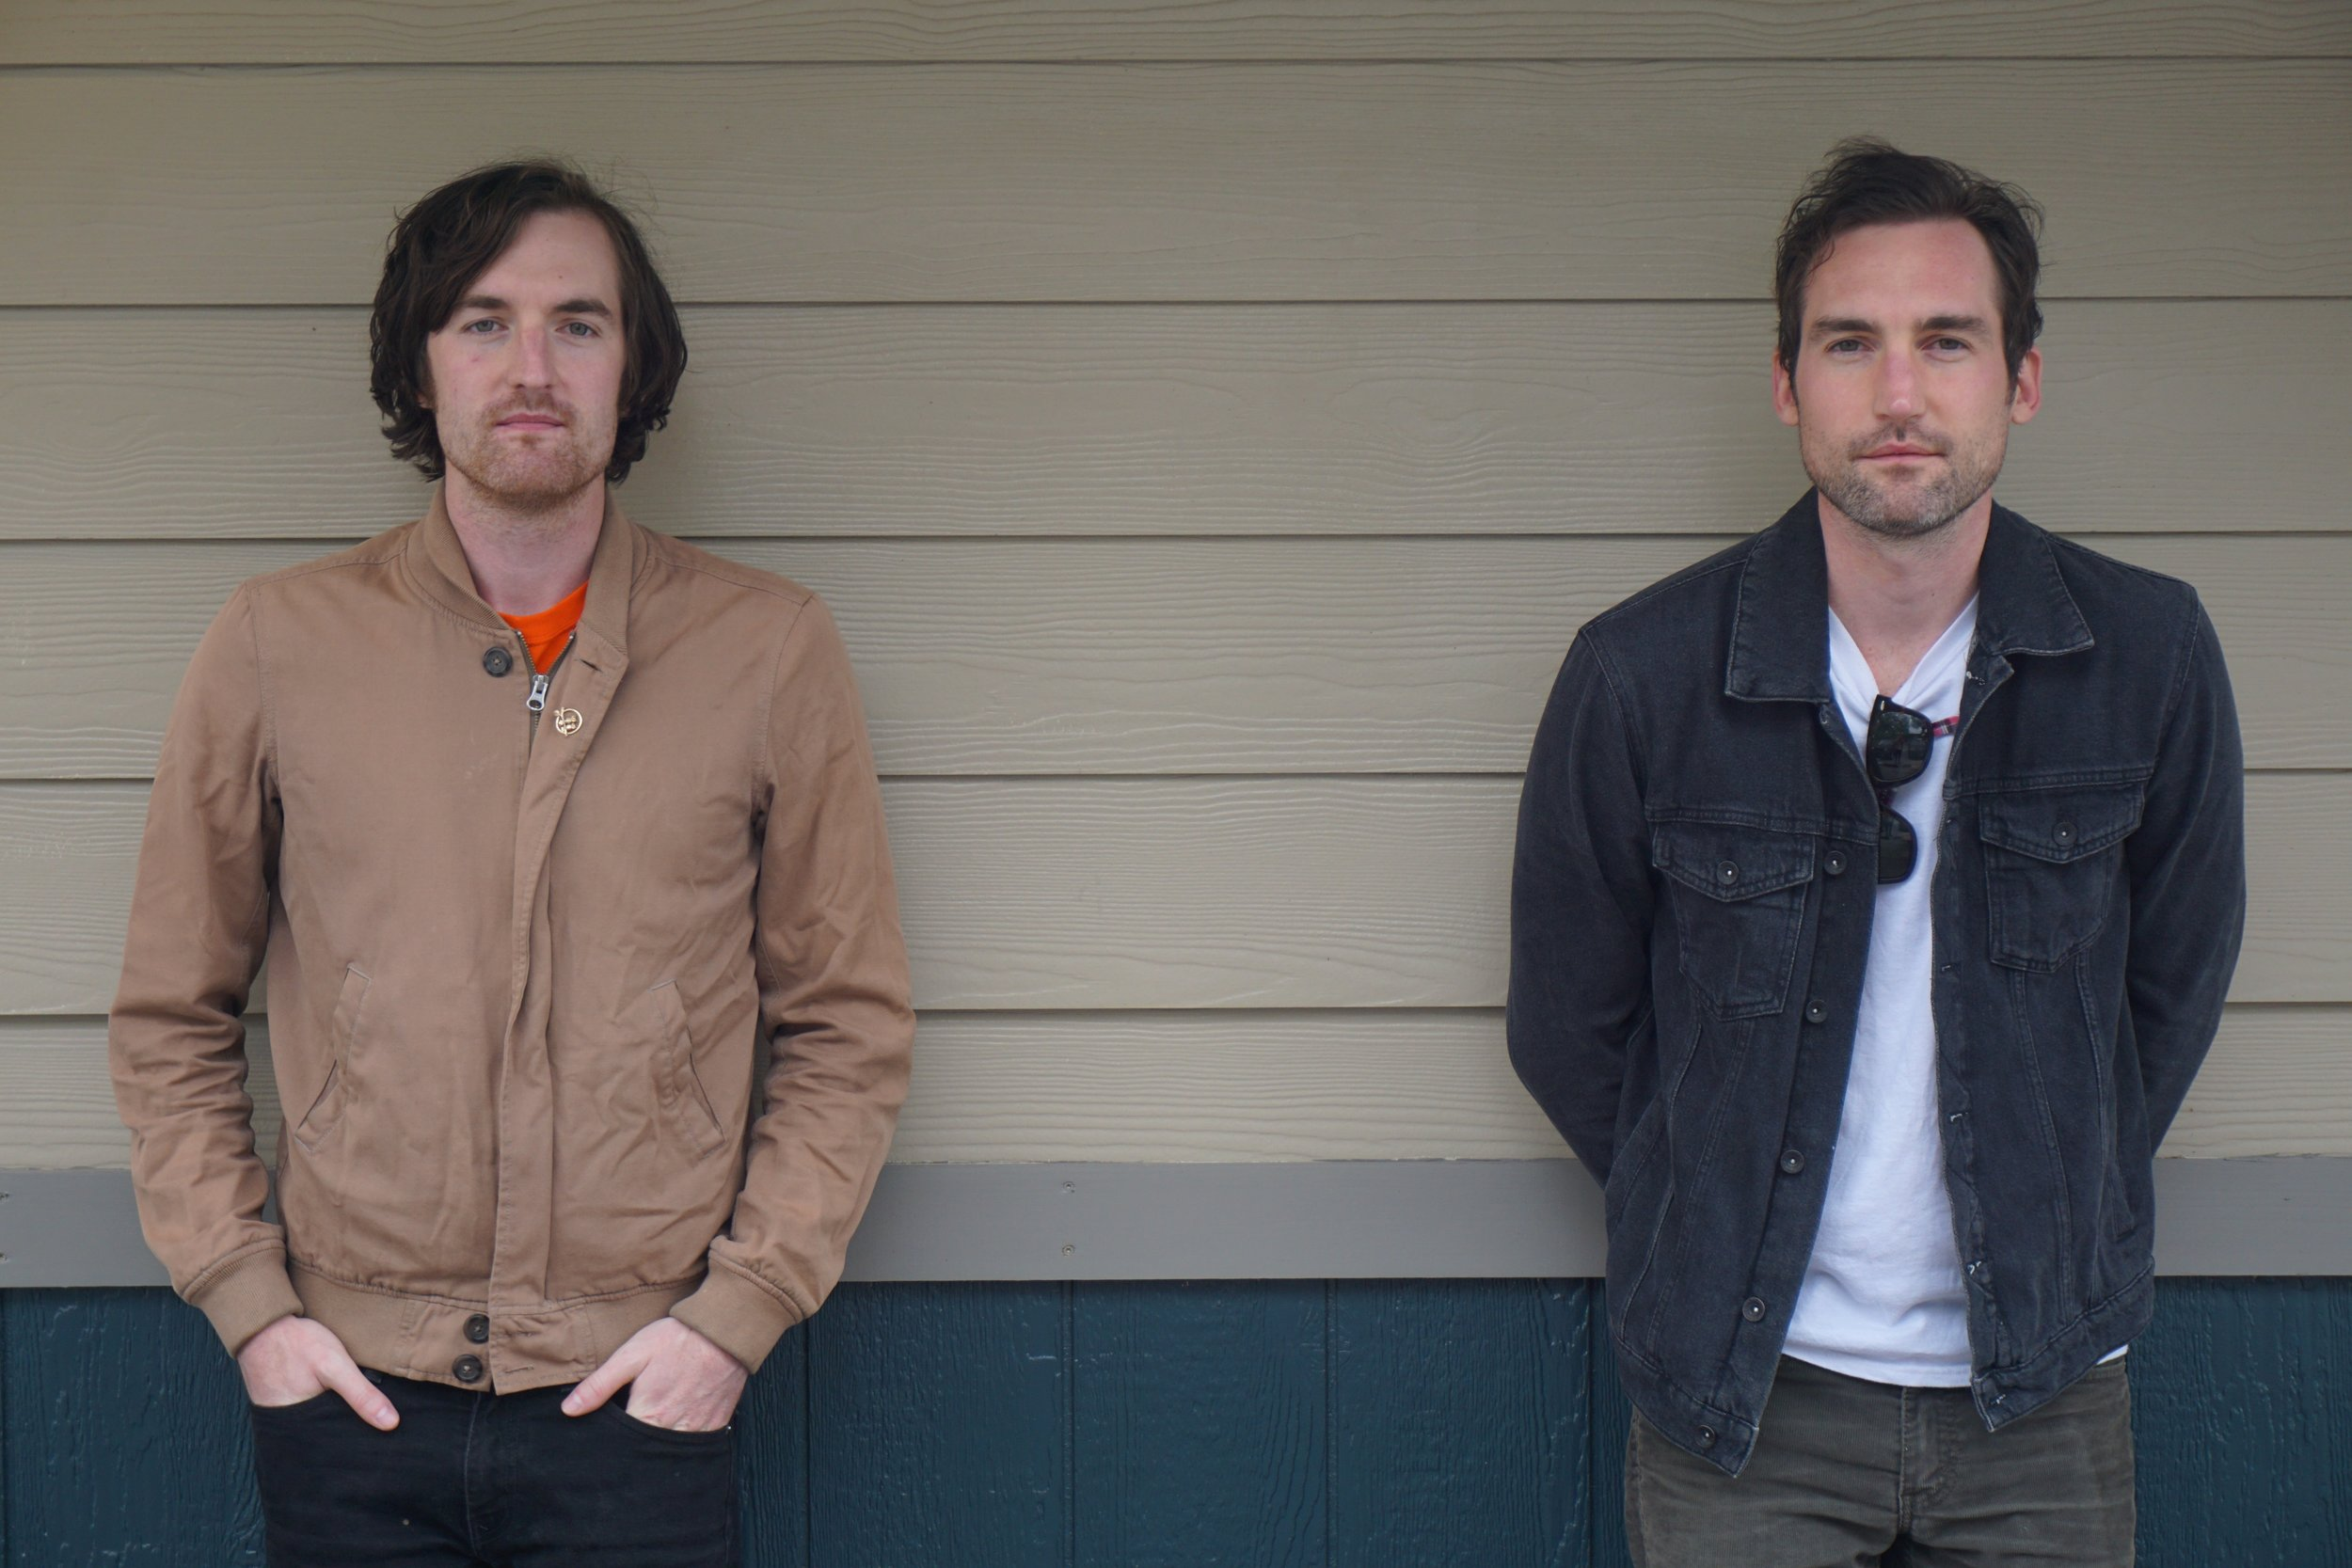 Airpark -  [Ben Ford (right), on the dynamics of releasing music as a new(er) band] -  ...it's more important to get more frequent smaller amounts of music out versus doing twelve songs and then not putting anything out for two years as a new band just didn't seem to make a lot of sense. I think the attention spans are getting smaller and smaller.